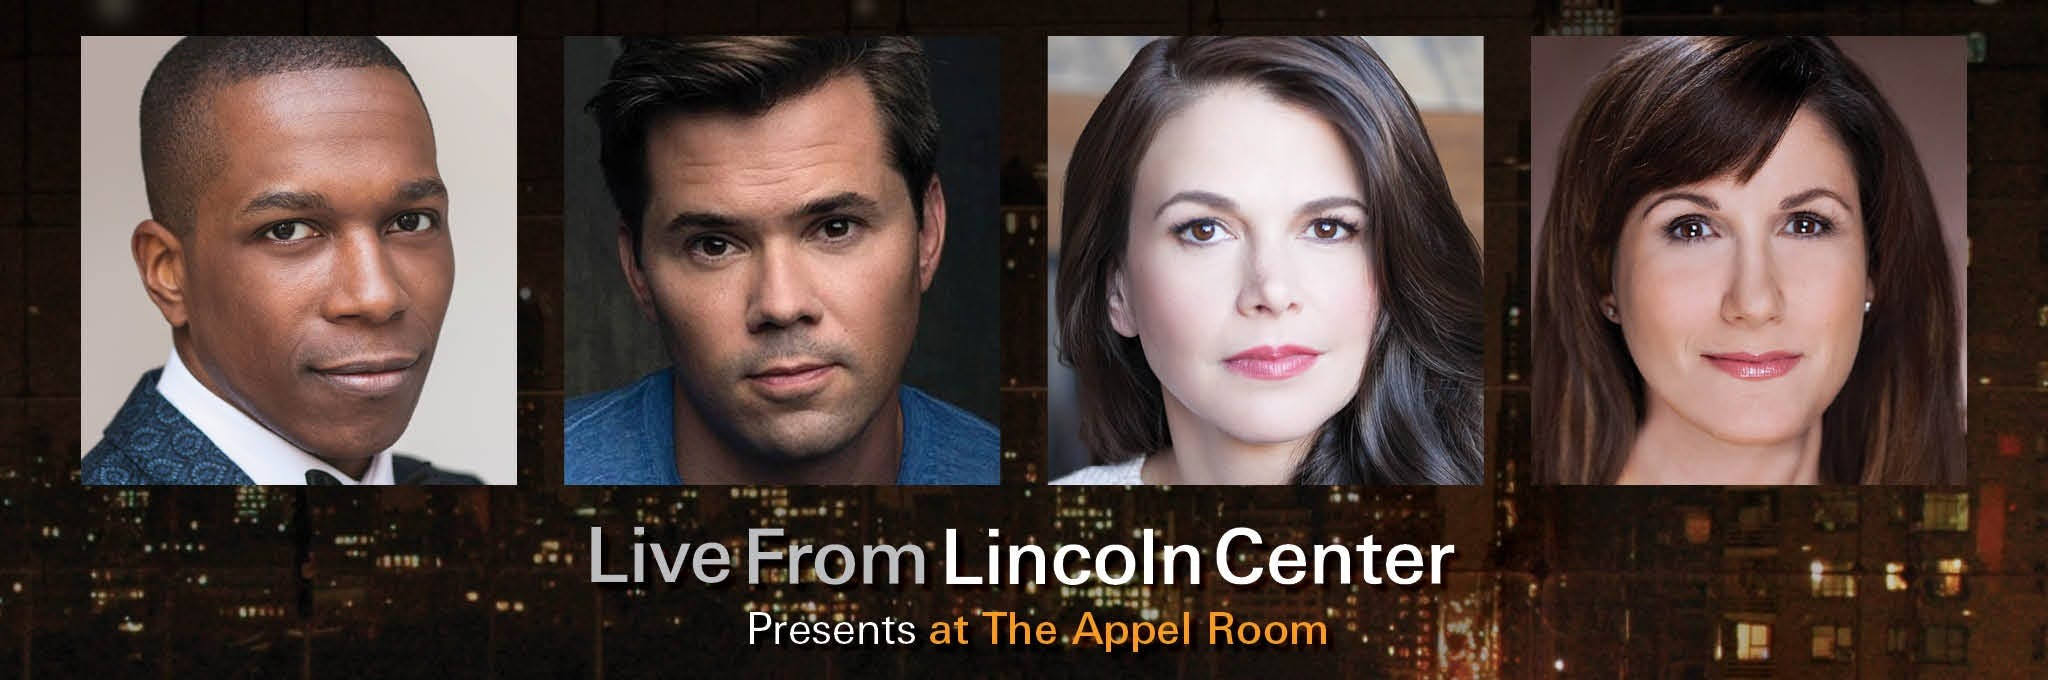 Live From Lincoln Center Presents Leslie Odom Jr. Logo